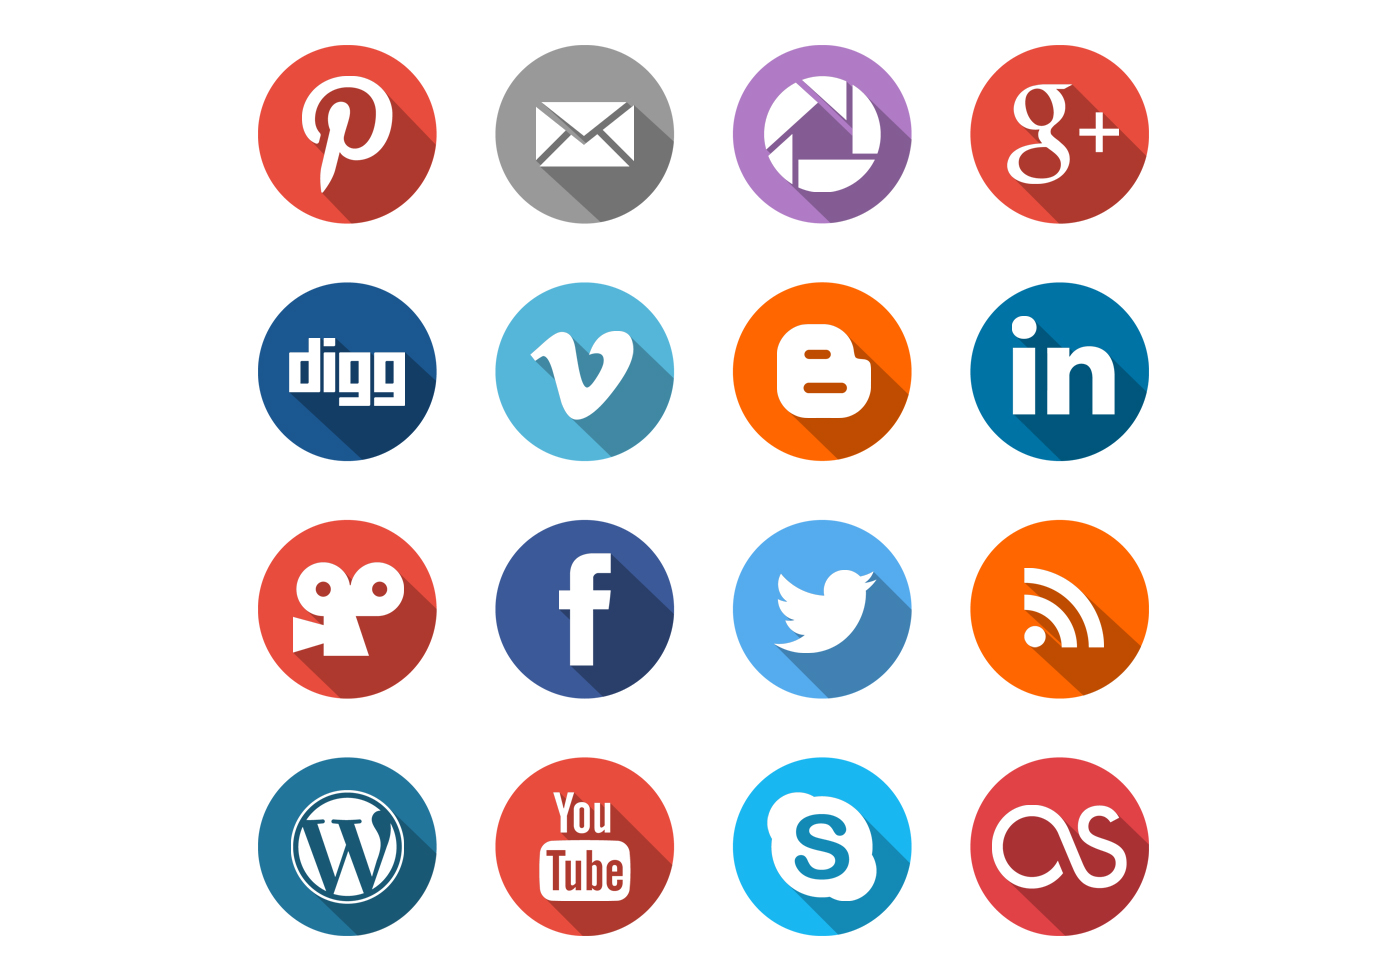 round-social-media-icons-psd-set-photoshop-psds.jpg